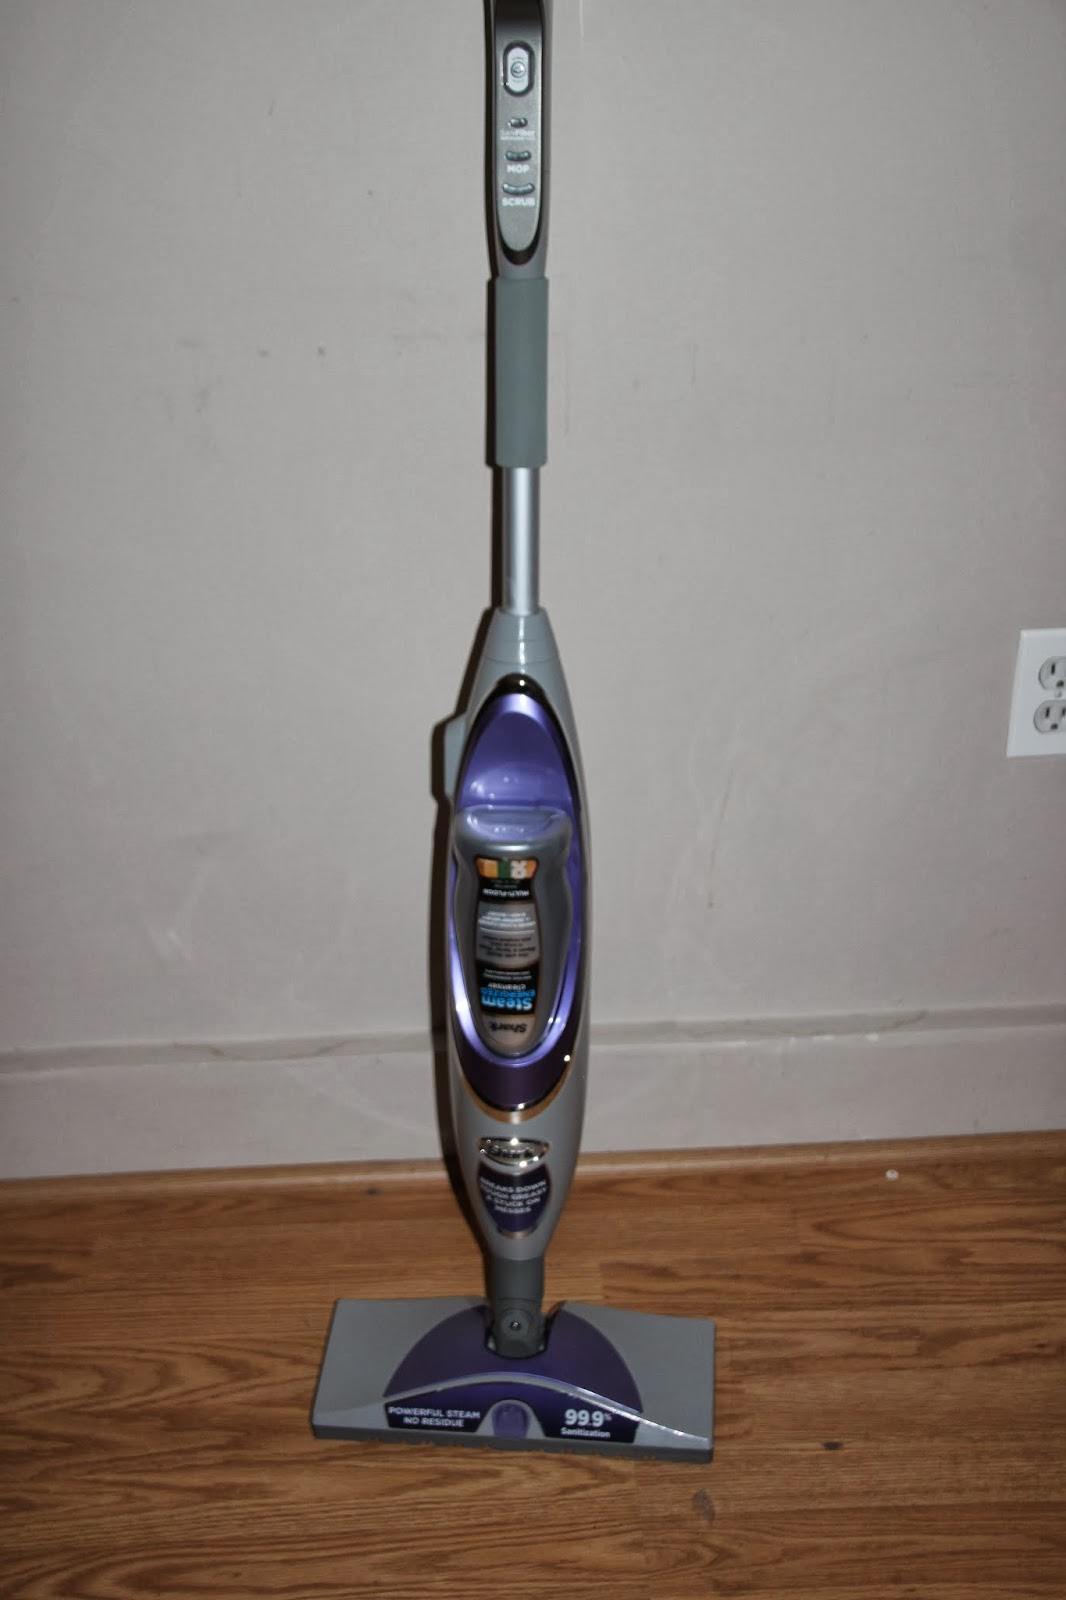 Susan Disney Shark Pro Steam Amp Spray Mop